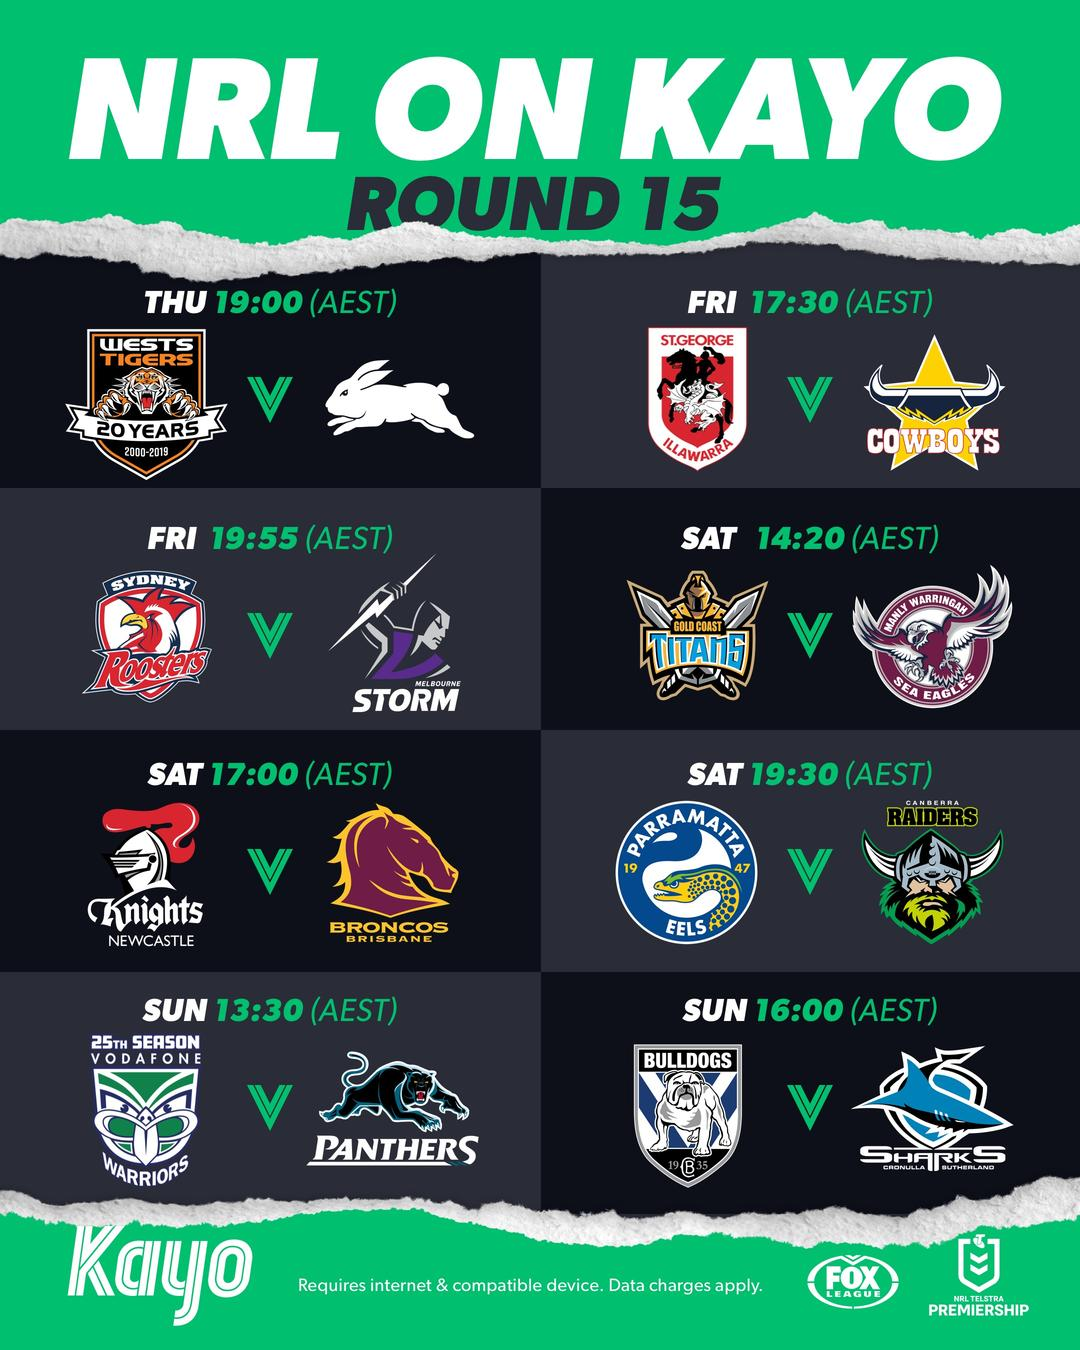 What's on Kayo NRL Round 15